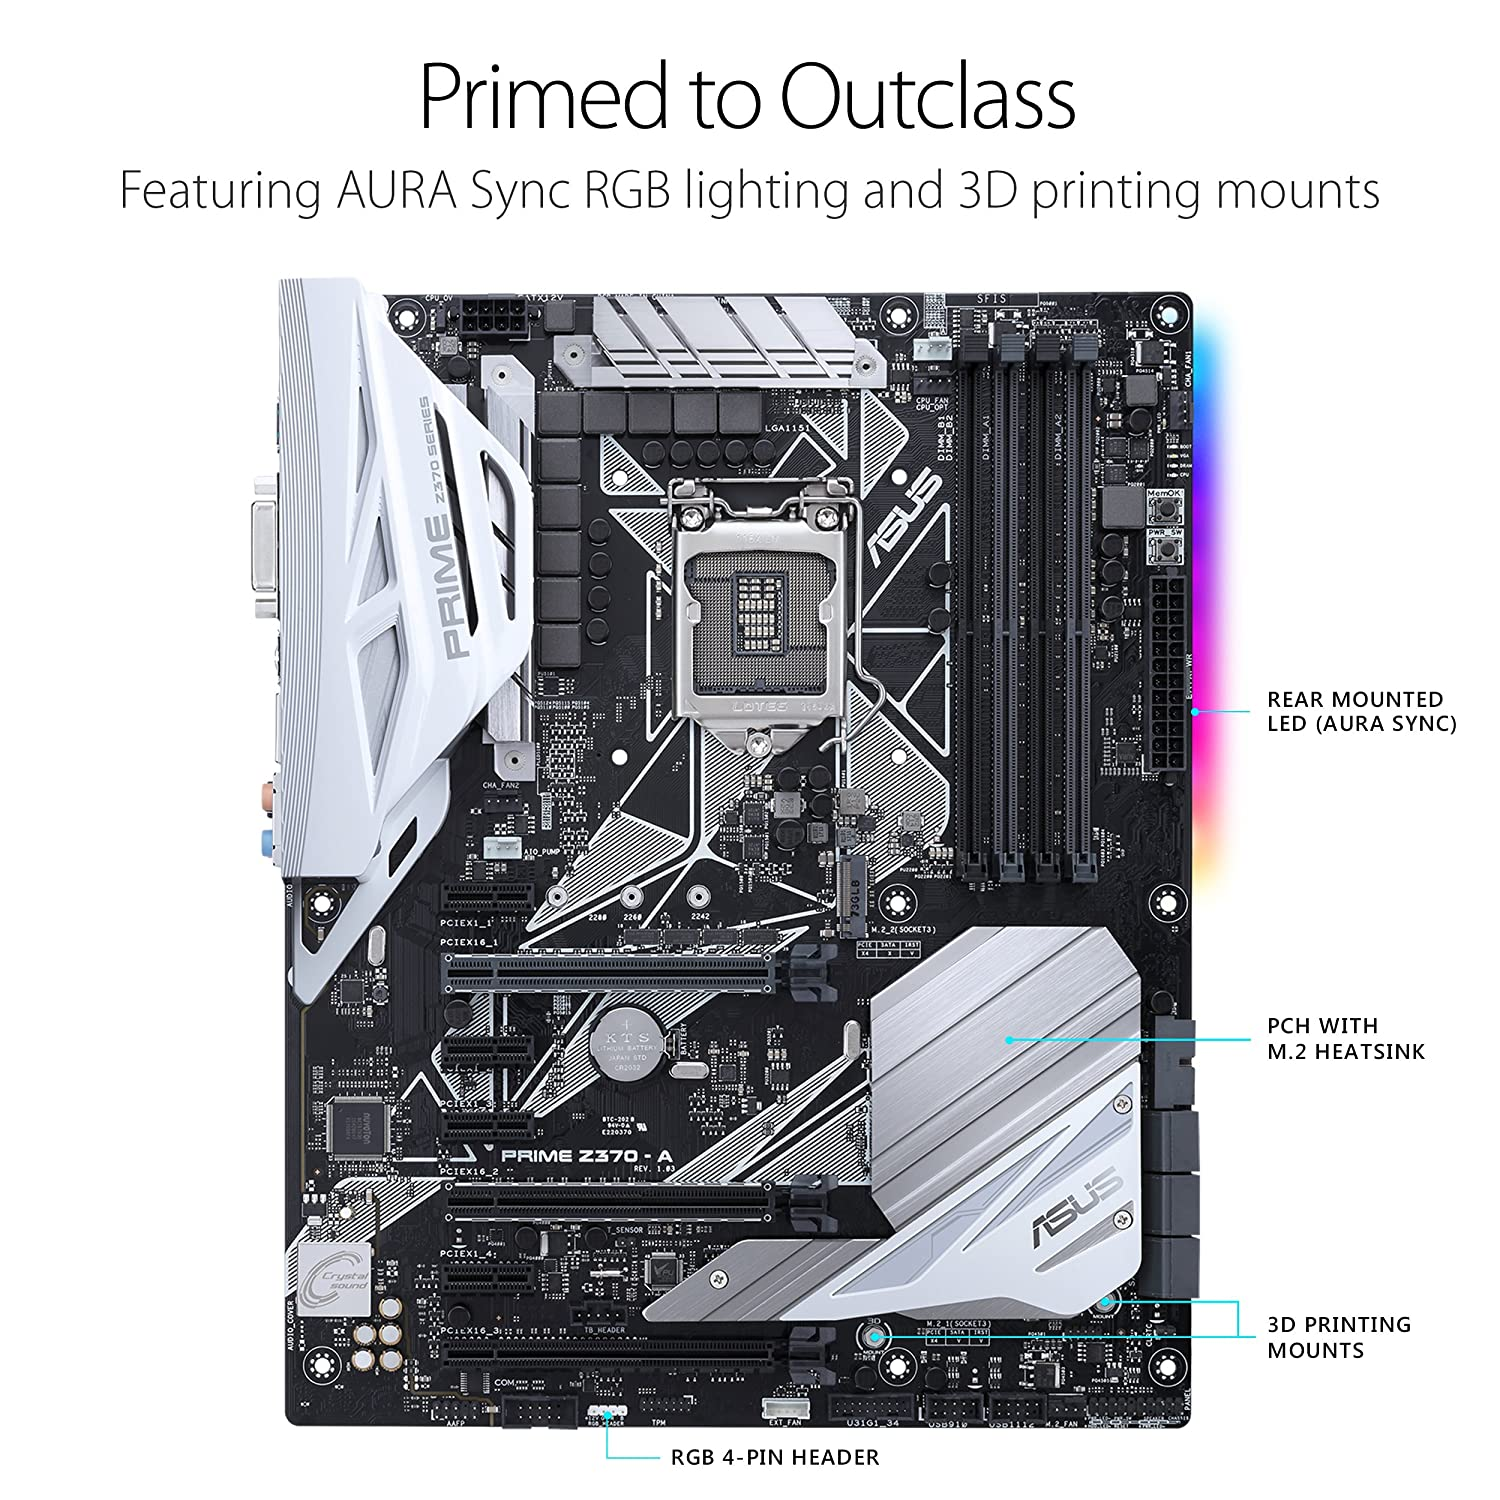 Asus Prime Z370 A Lga1151 Ddr4 Dp Hdmi Dvi M2 Usb 31 Wifienabled Rgb Led Strip Controller Stavros39 Stuff Atx Motherboard With For 8th Generation Intel Core Processors Computers